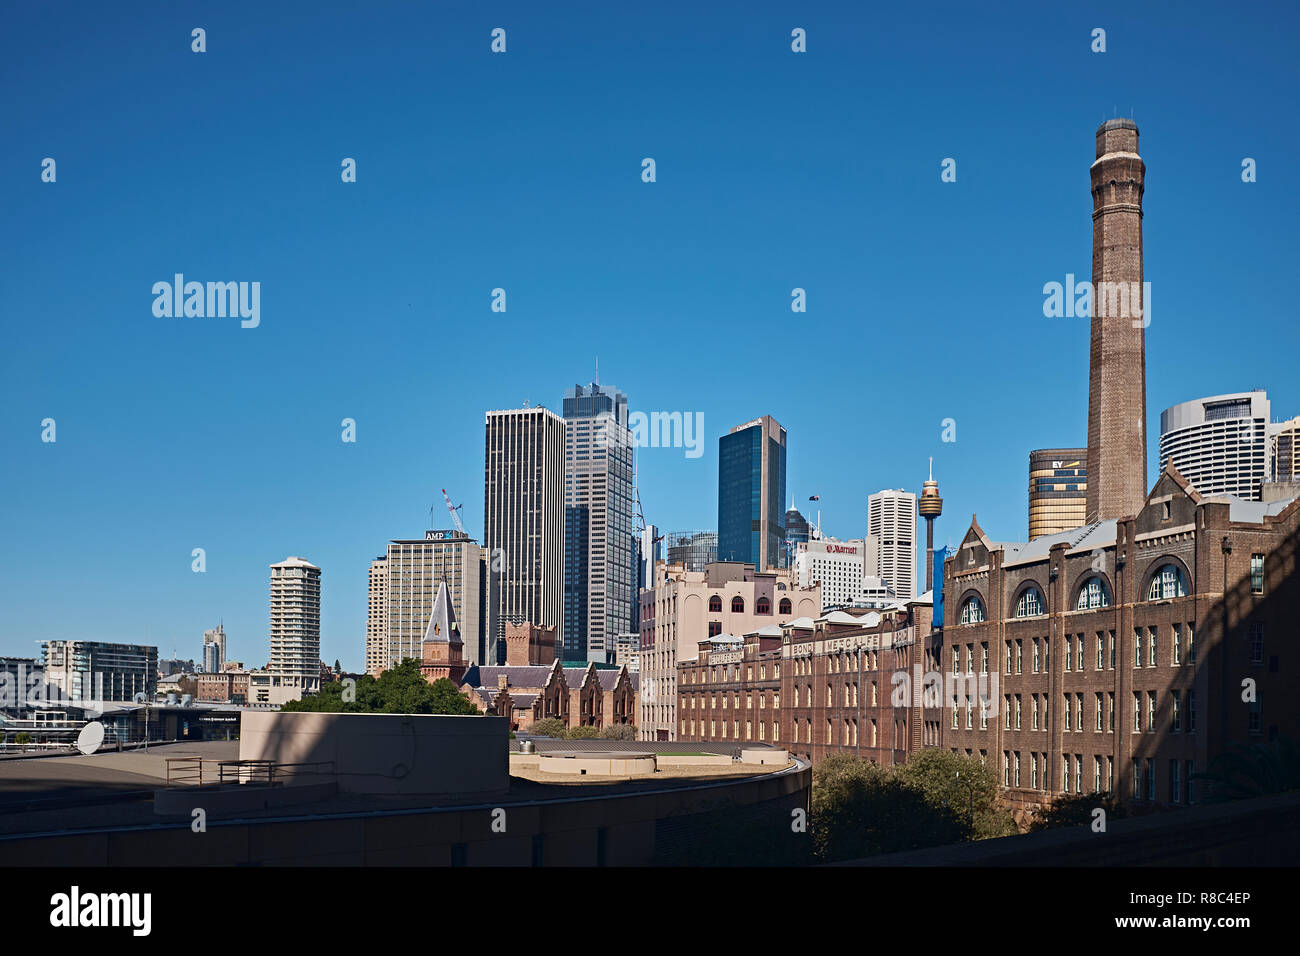 View of the Sydney skyline with the area known as The Rocks and the Sydney Central Bussiness District in the back ground, Sydney, NSW, Australia - Stock Image